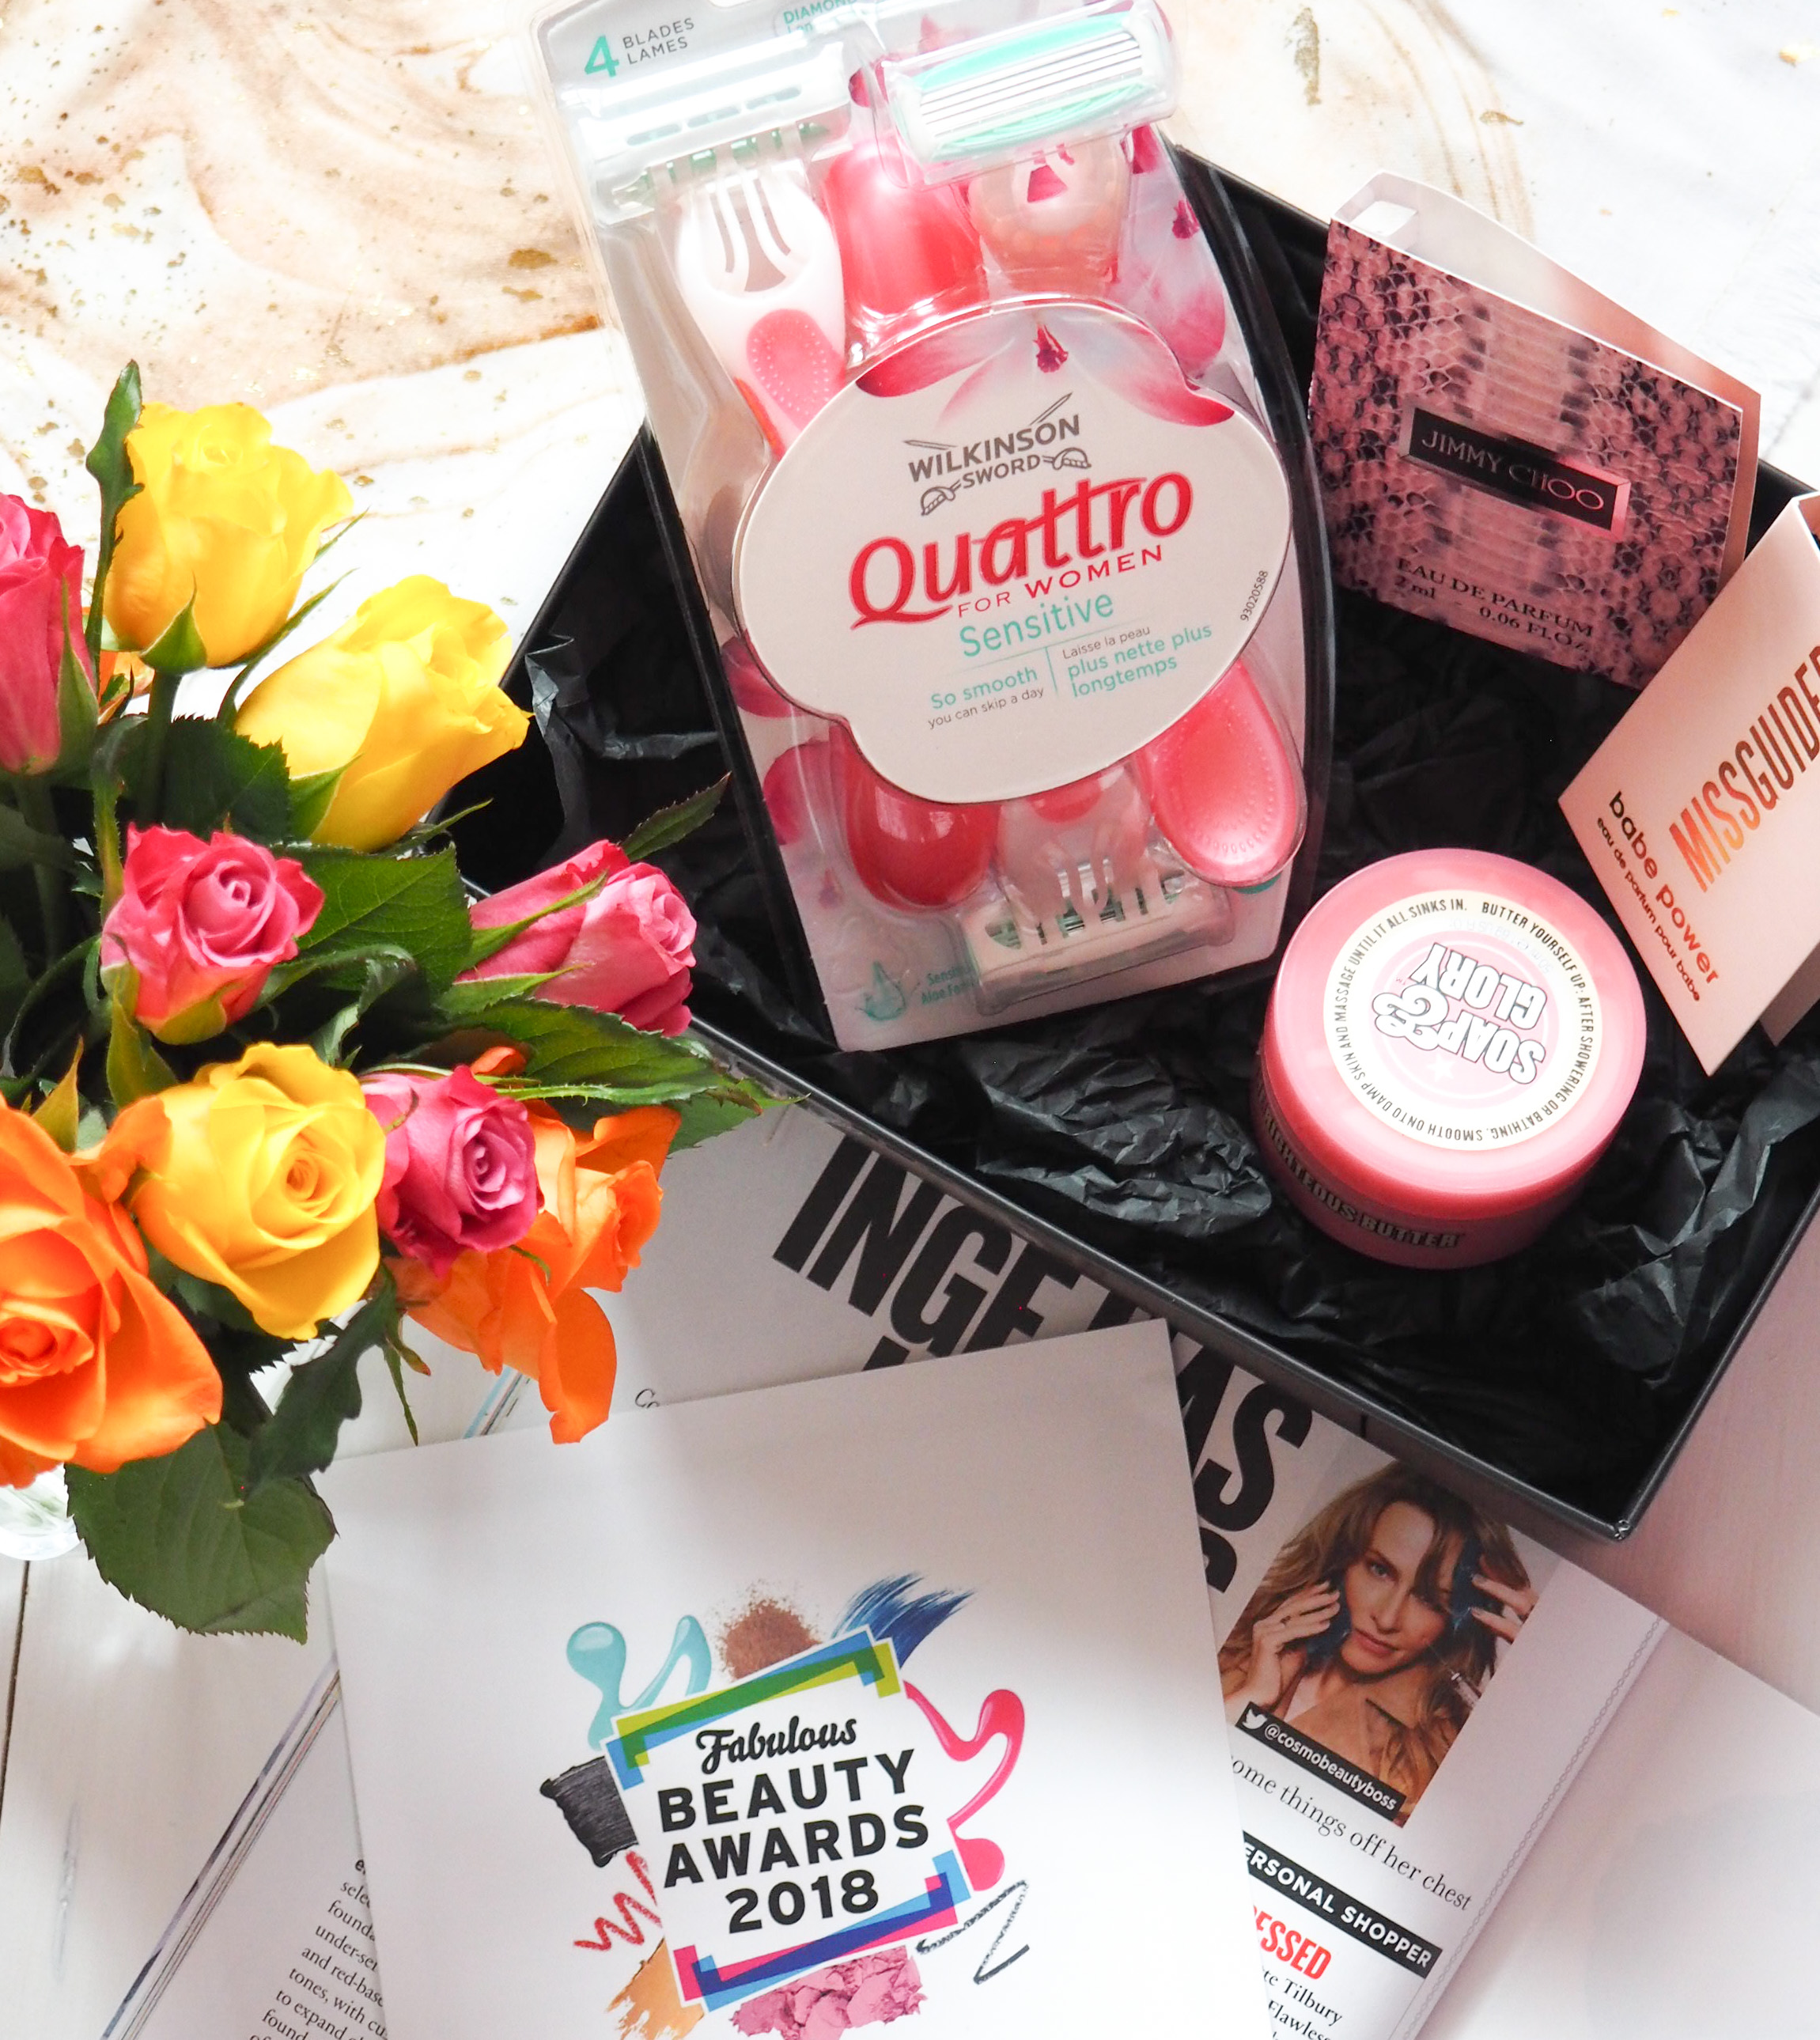 Fabulous Beauty Awards 2018 Beauty Box from Latest in Beauty 6.jpg